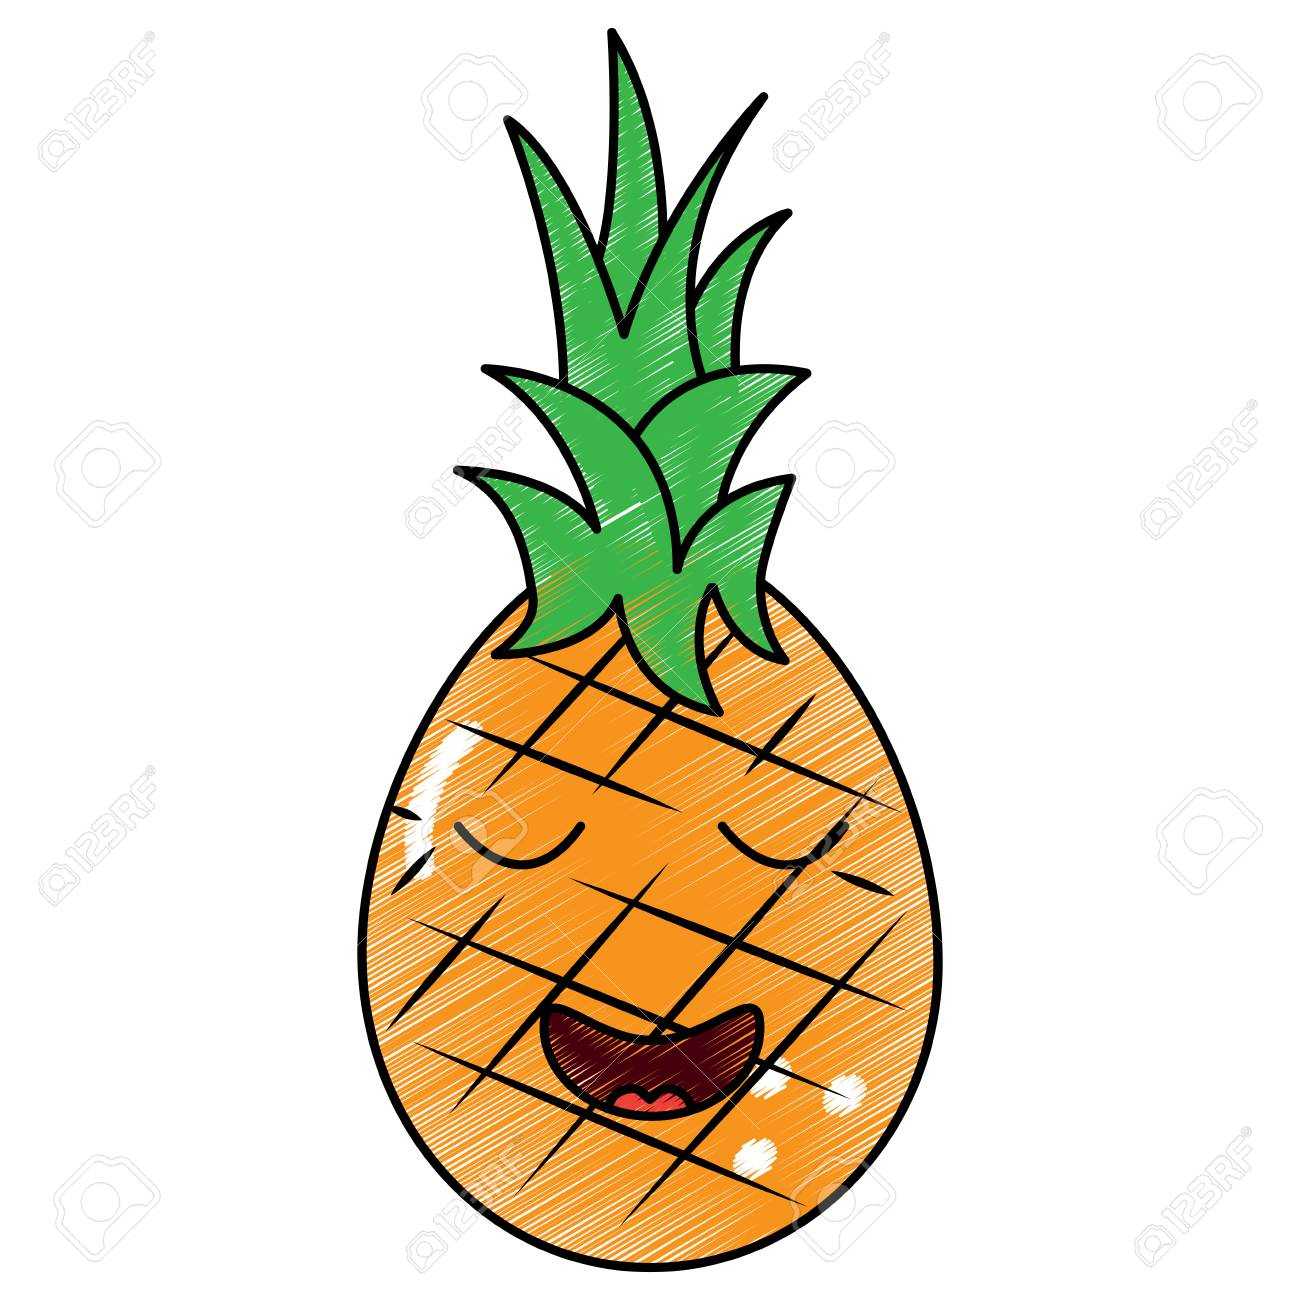 Fruit Dessin fruit d'ananas kawaii, illustration de vecteur de dessin animé clip